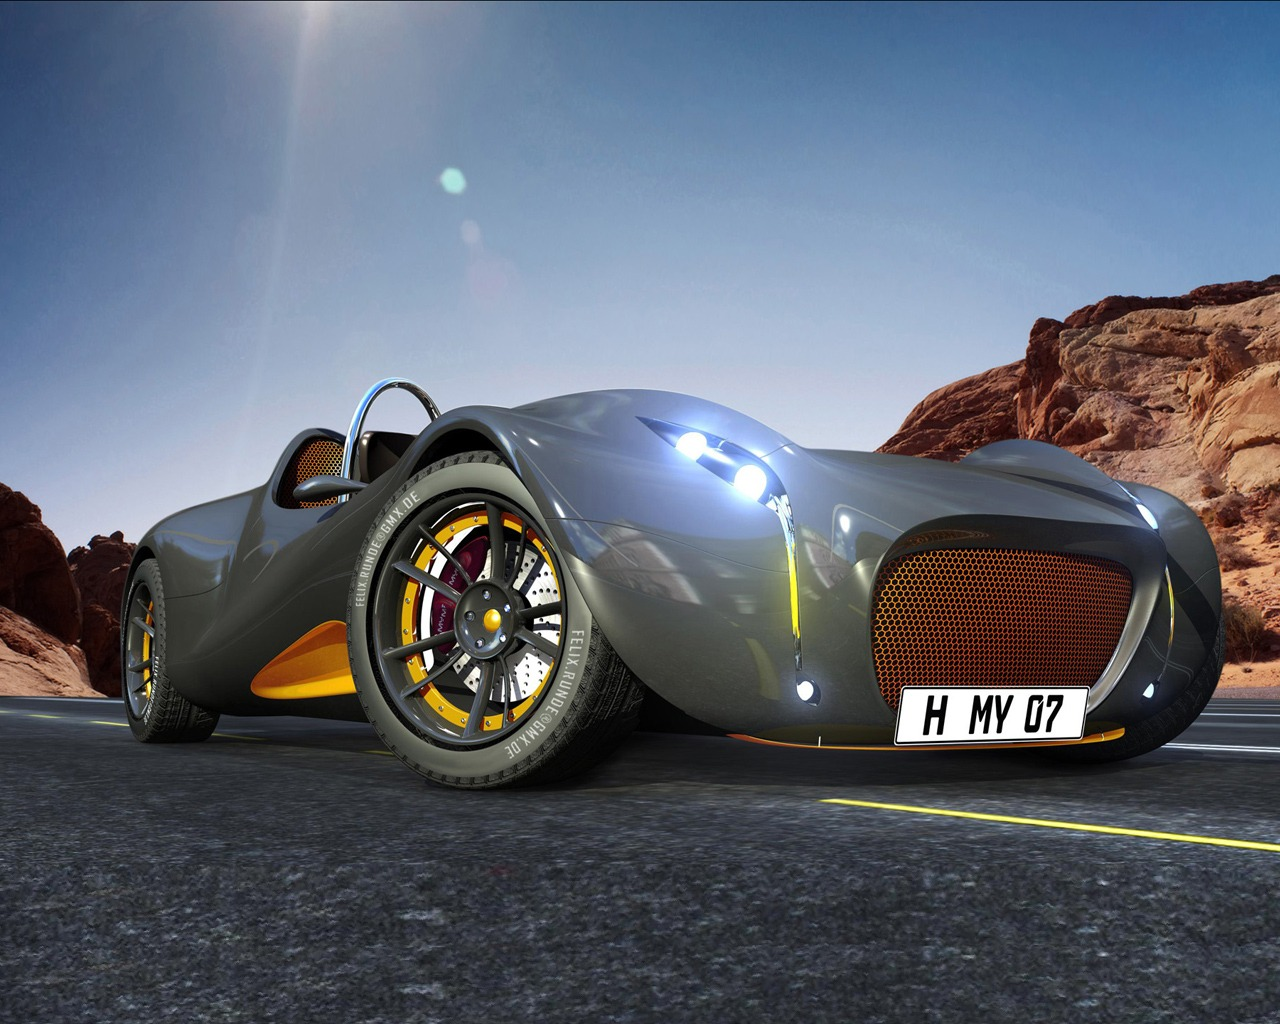 morey concept car wallpaper 3d models 3d wallpapers - Cool Cars Wallpapers 3d